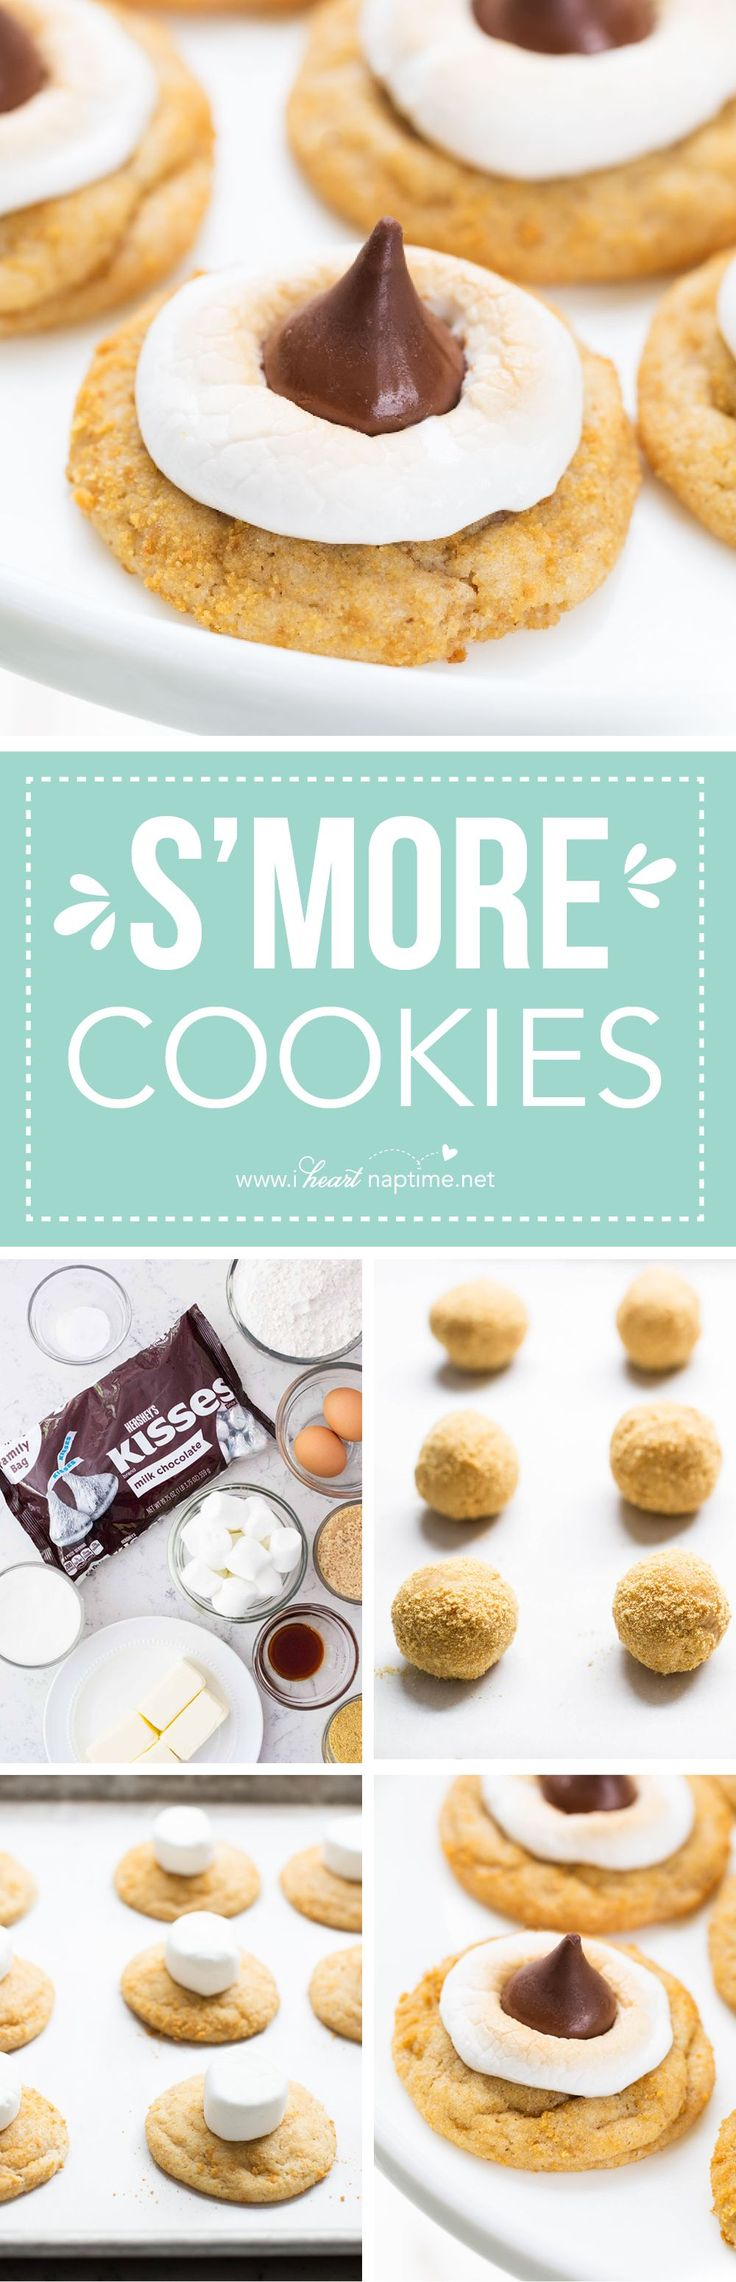 S'mores Cookies... a delicious summery treat with a buttery graham cracker dough, a gooey marshmallows, and a HERSHEY'S KISS chocolate on top! It is irresistible! @hersheyskisses #partner